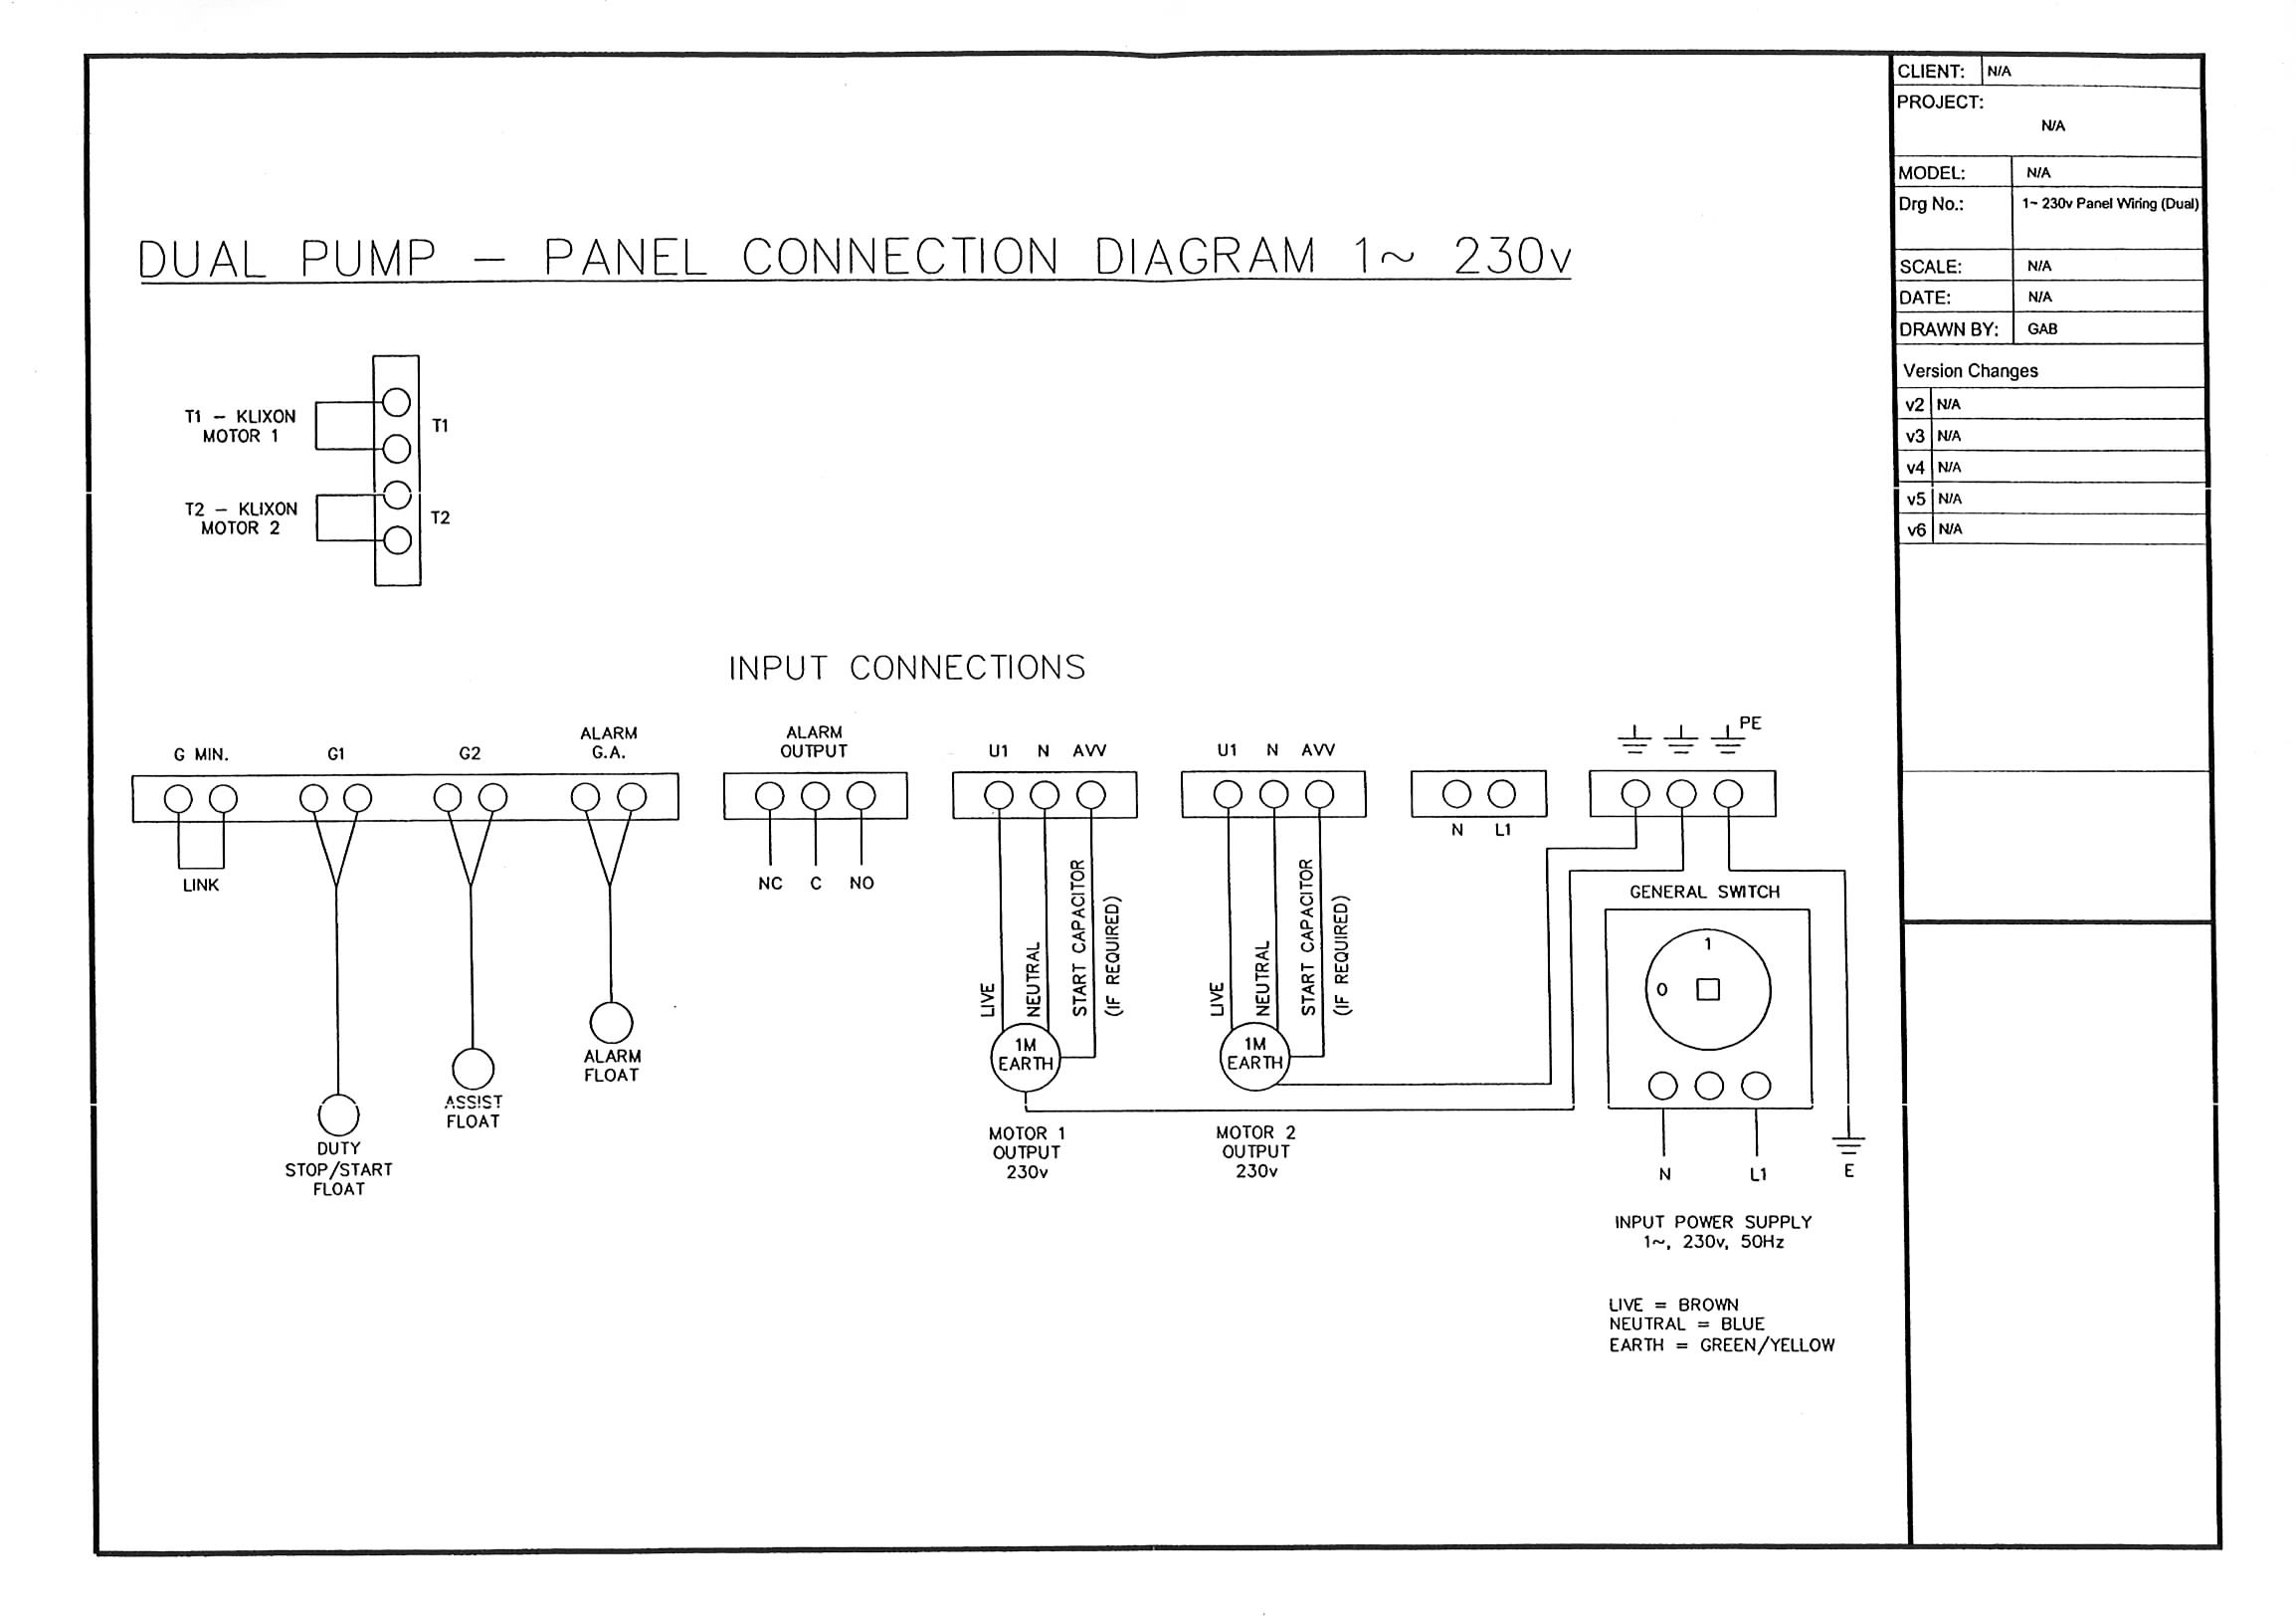 AES Duplex Dual Pump Control Panel wiring diagram for simplex pump panel readingrat net orenco duplex wiring diagram at aneh.co